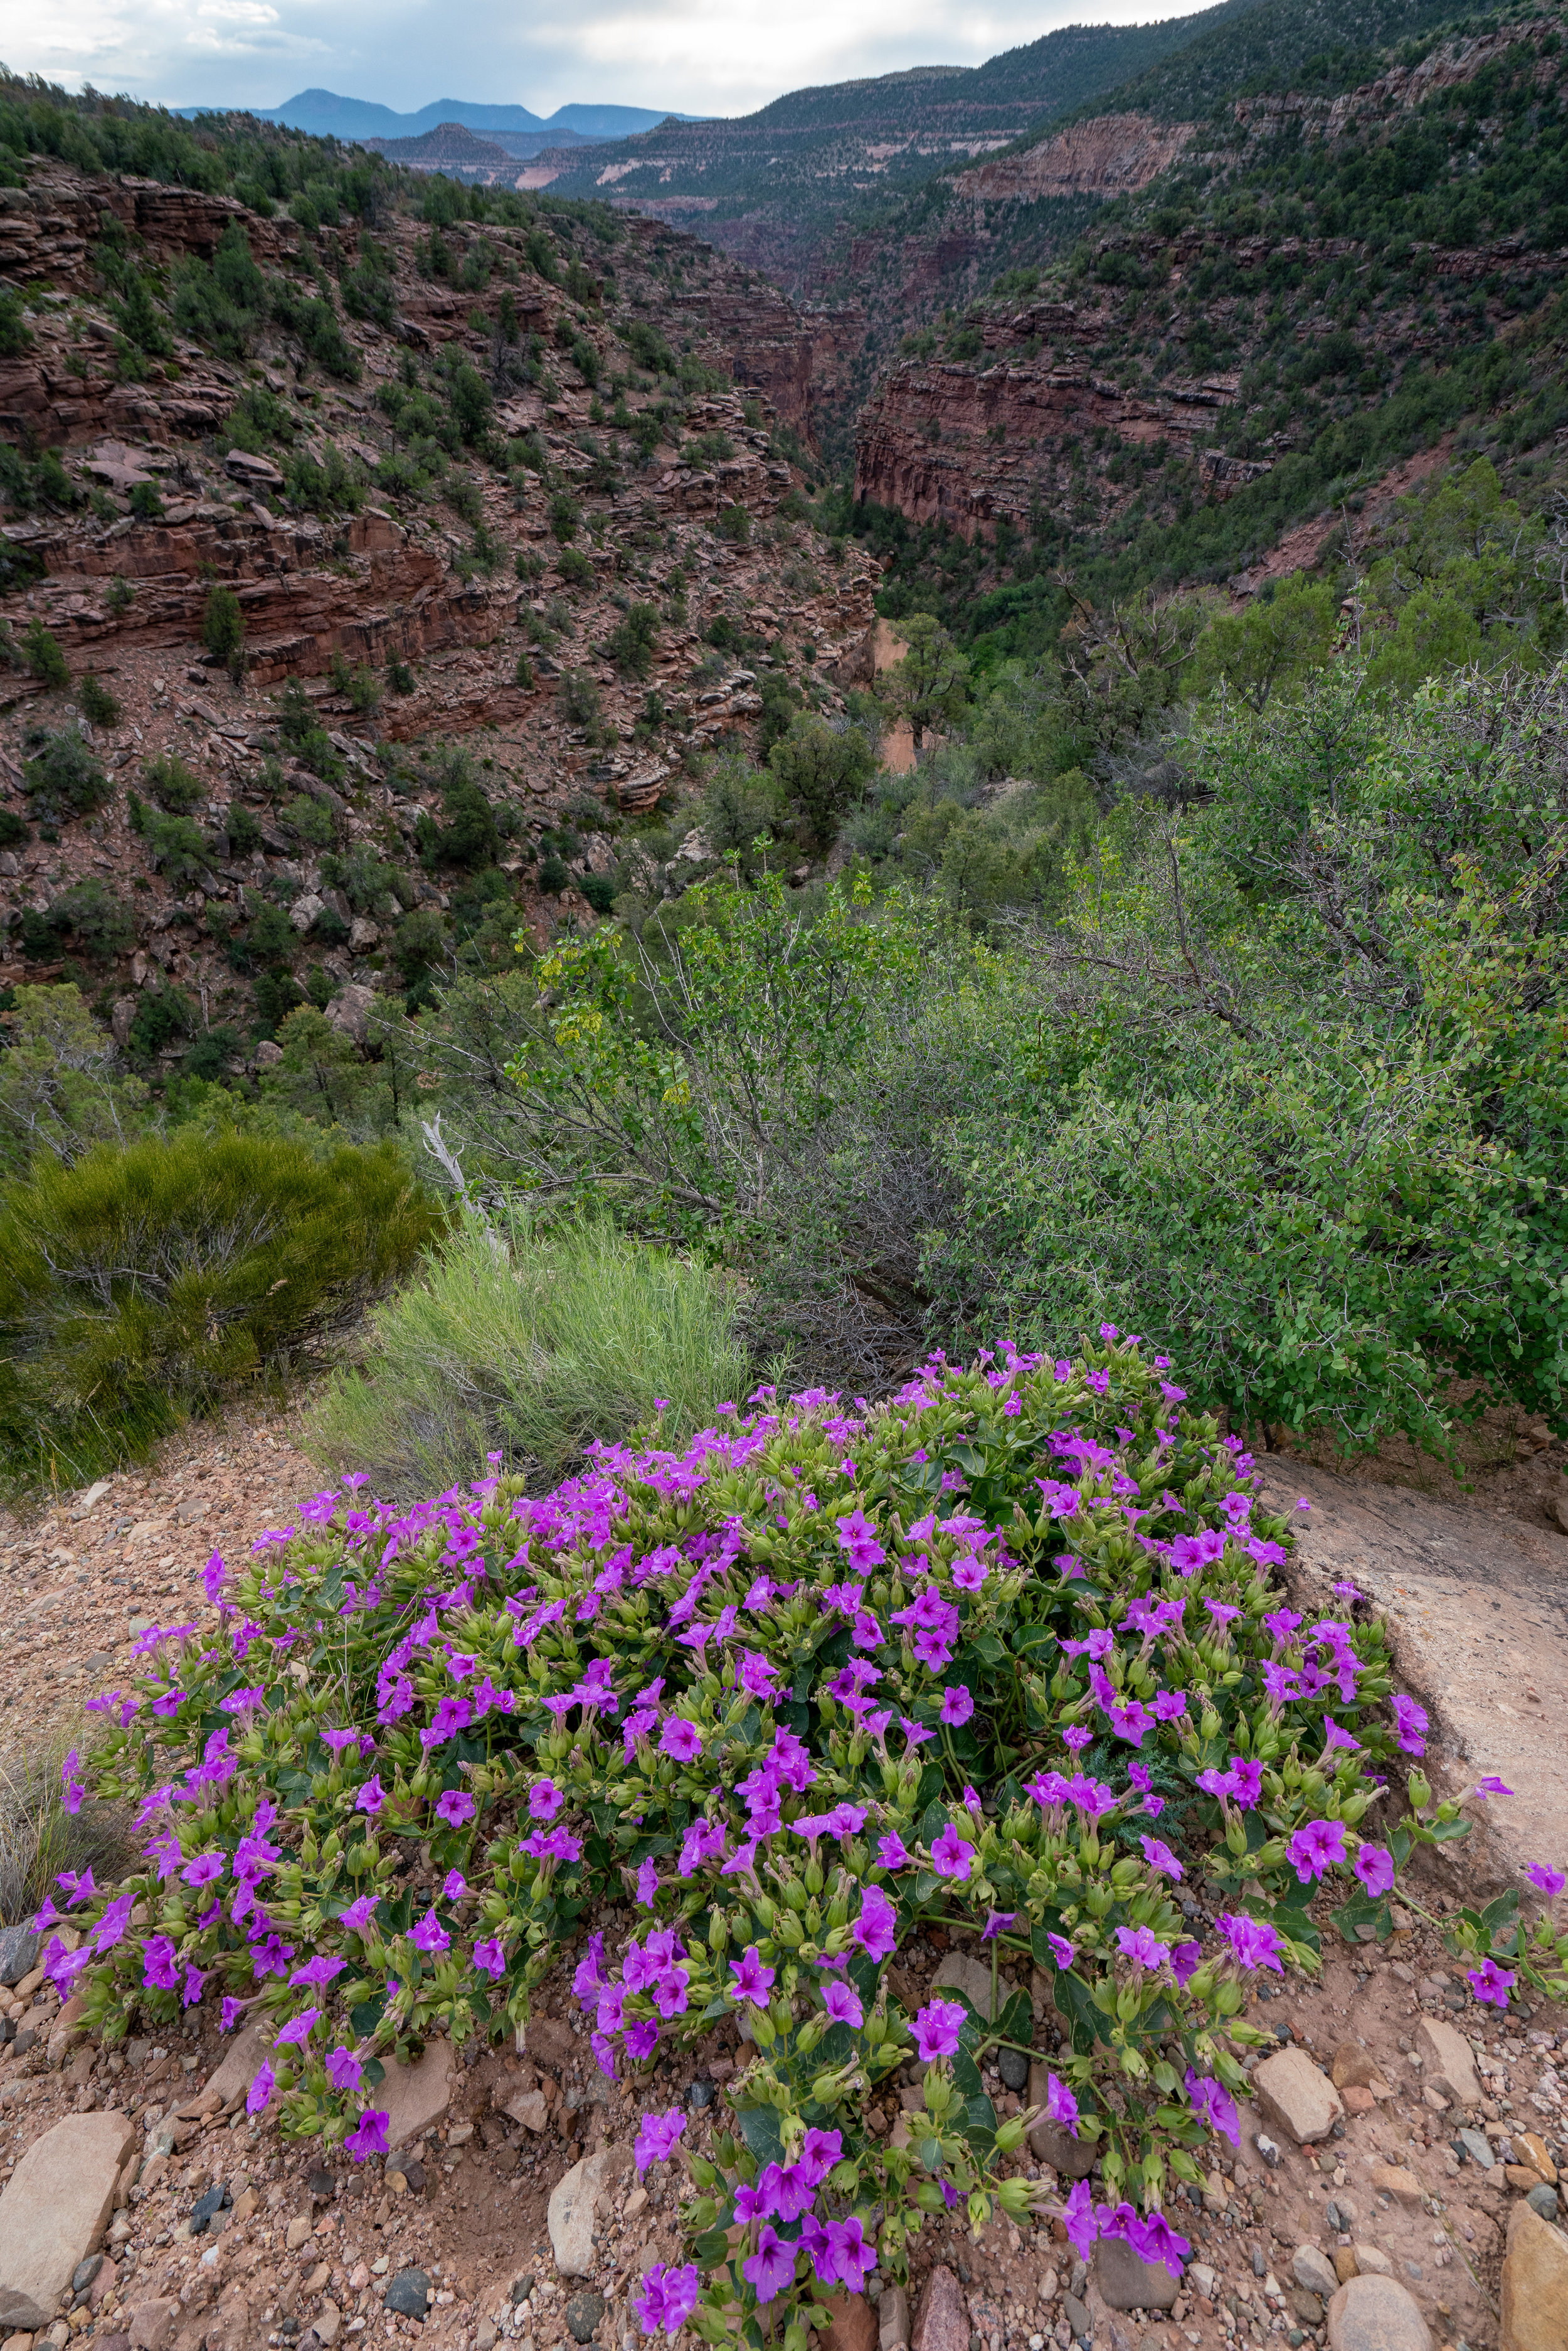 Canyon climb and rim flowers